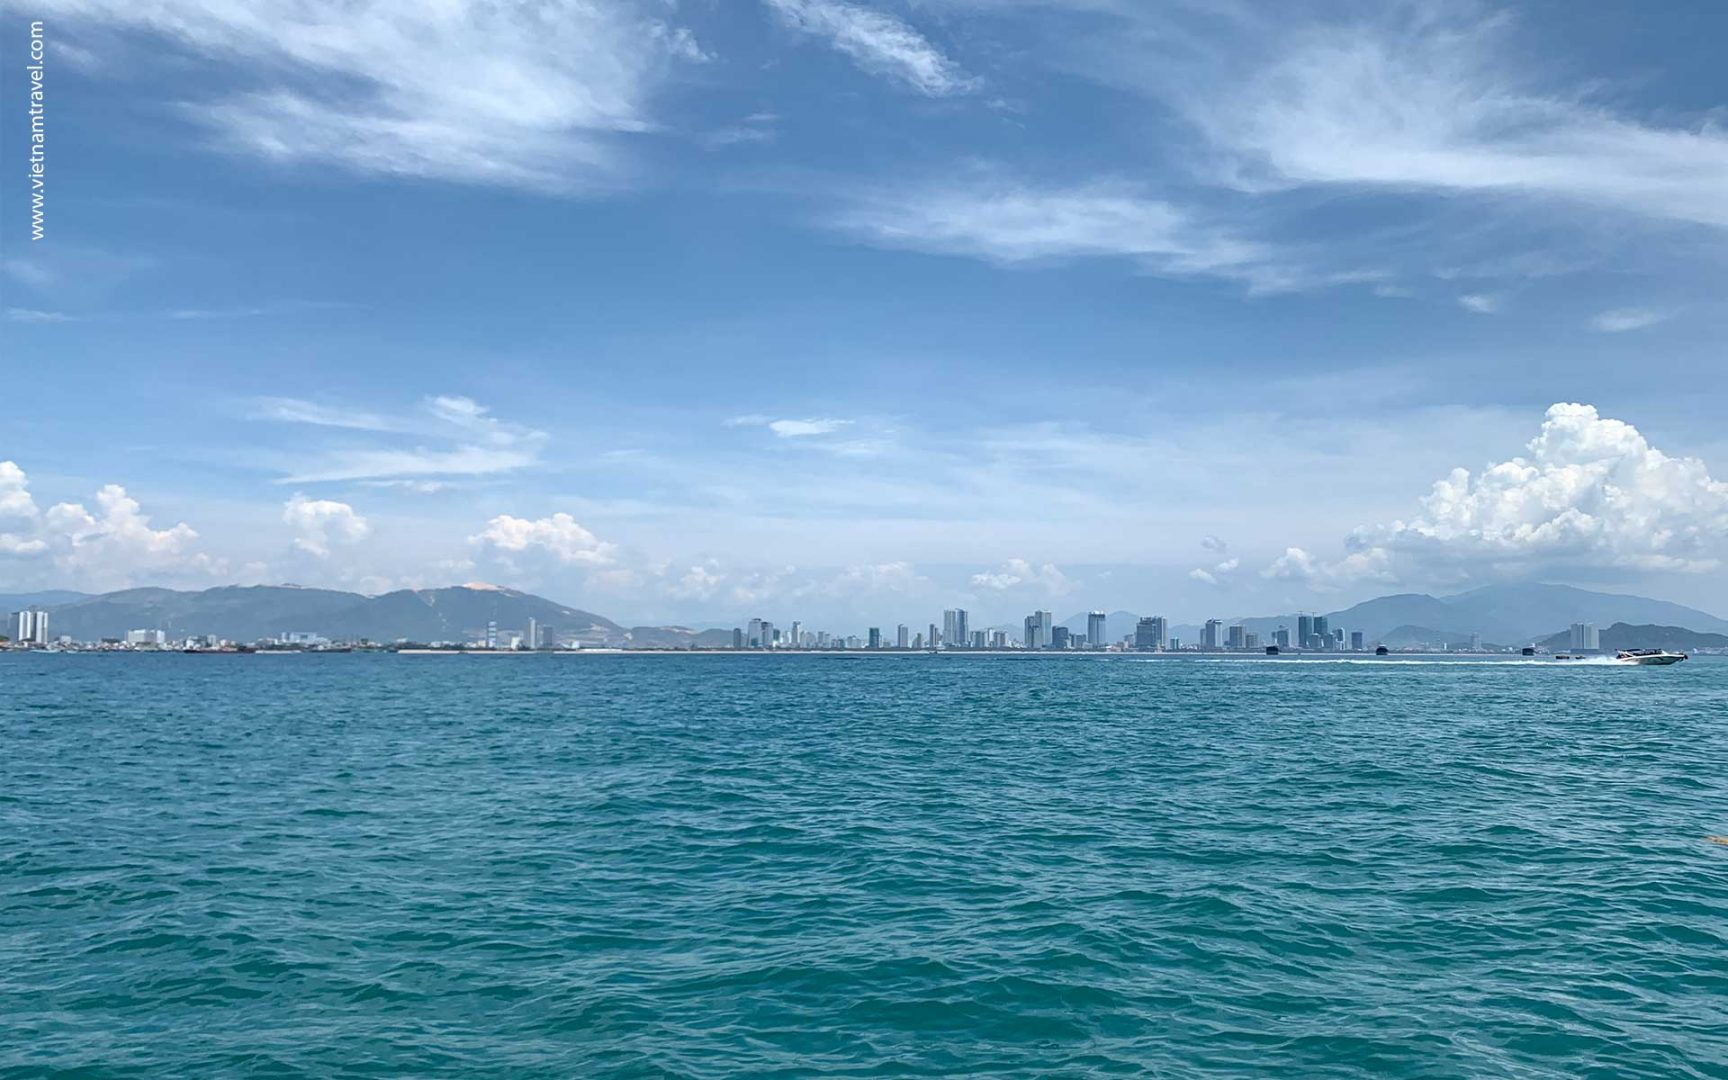 Nha Trang City- View from Spectrum of the sea